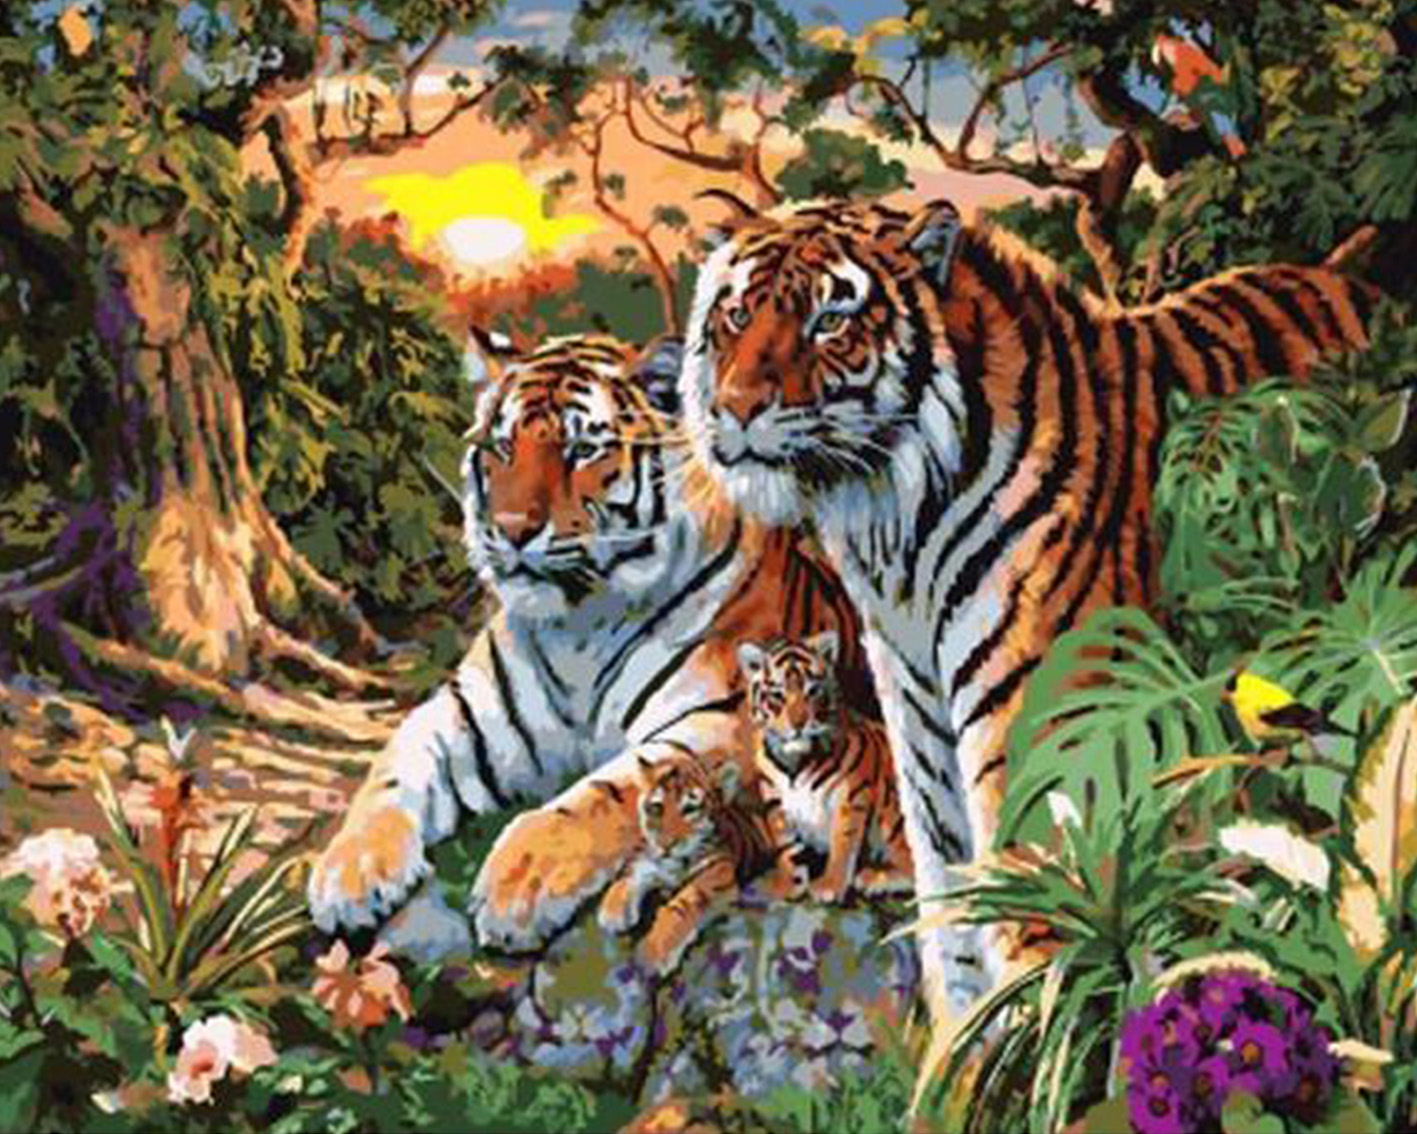 Two tigers By Numbers Modern Wall Art Handpainted Oil Painting On Canvas For Home Decor  ...